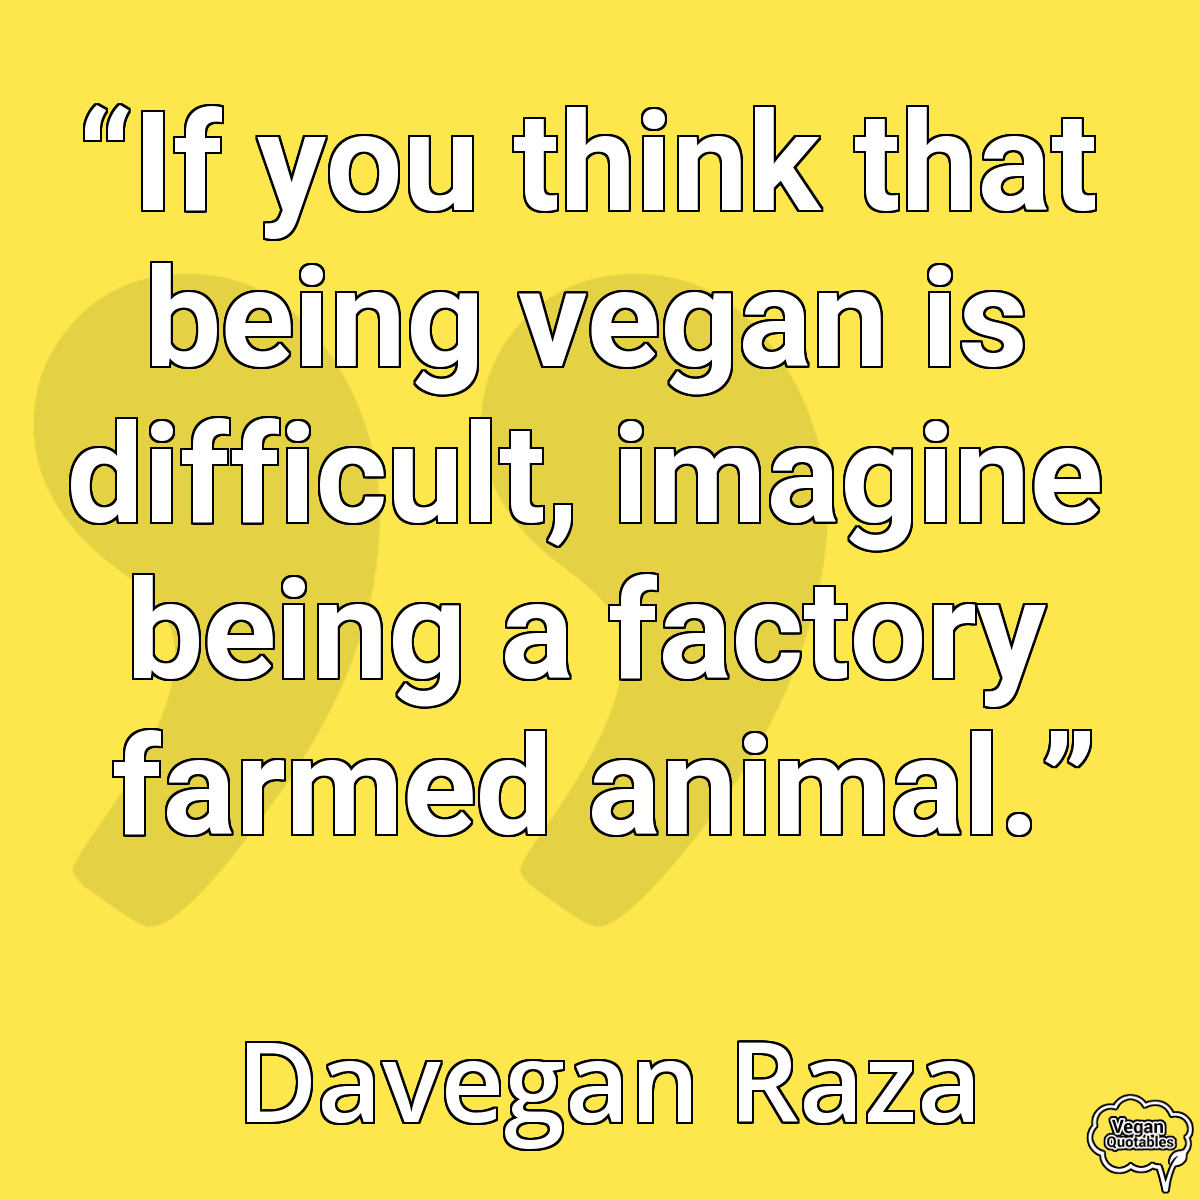 Vegan Quotes Vegan Quotedavegan Raza  Vegan Quotes  Pinterest  Animal